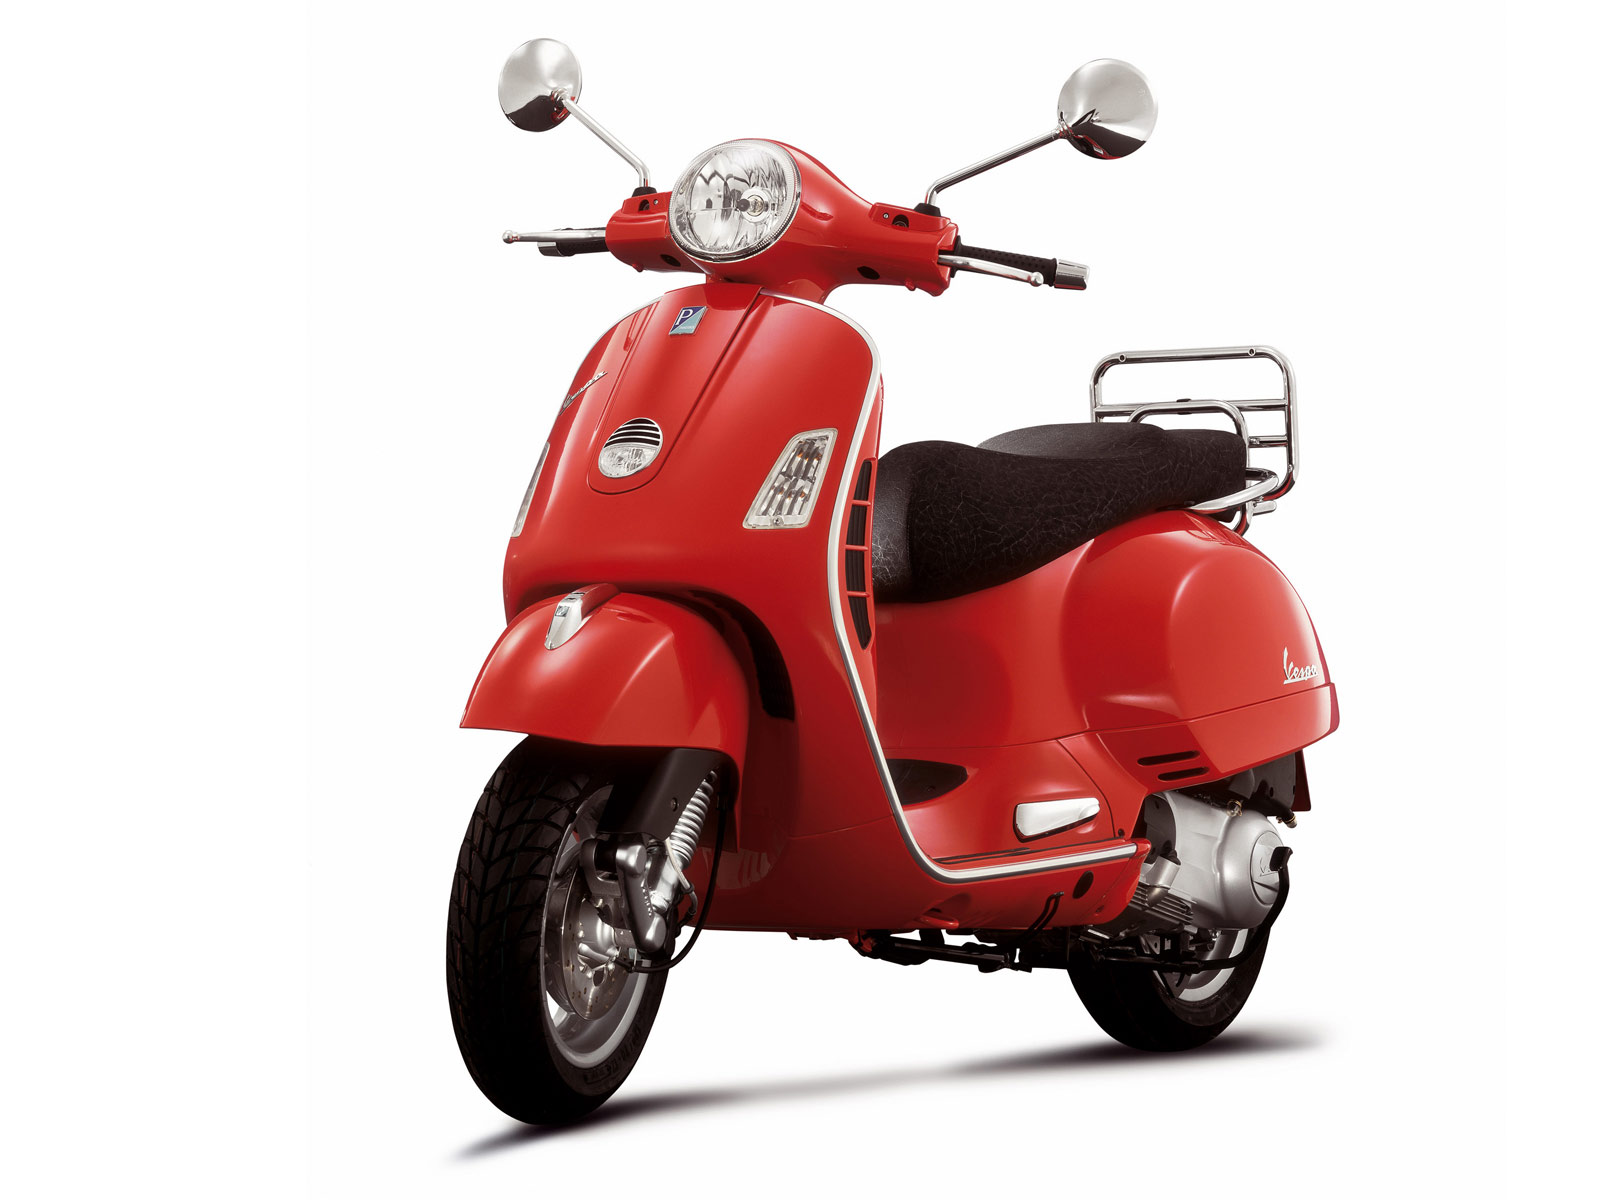 piaggio scooter price 2017 latest models specifications sulekha bikes. Black Bedroom Furniture Sets. Home Design Ideas